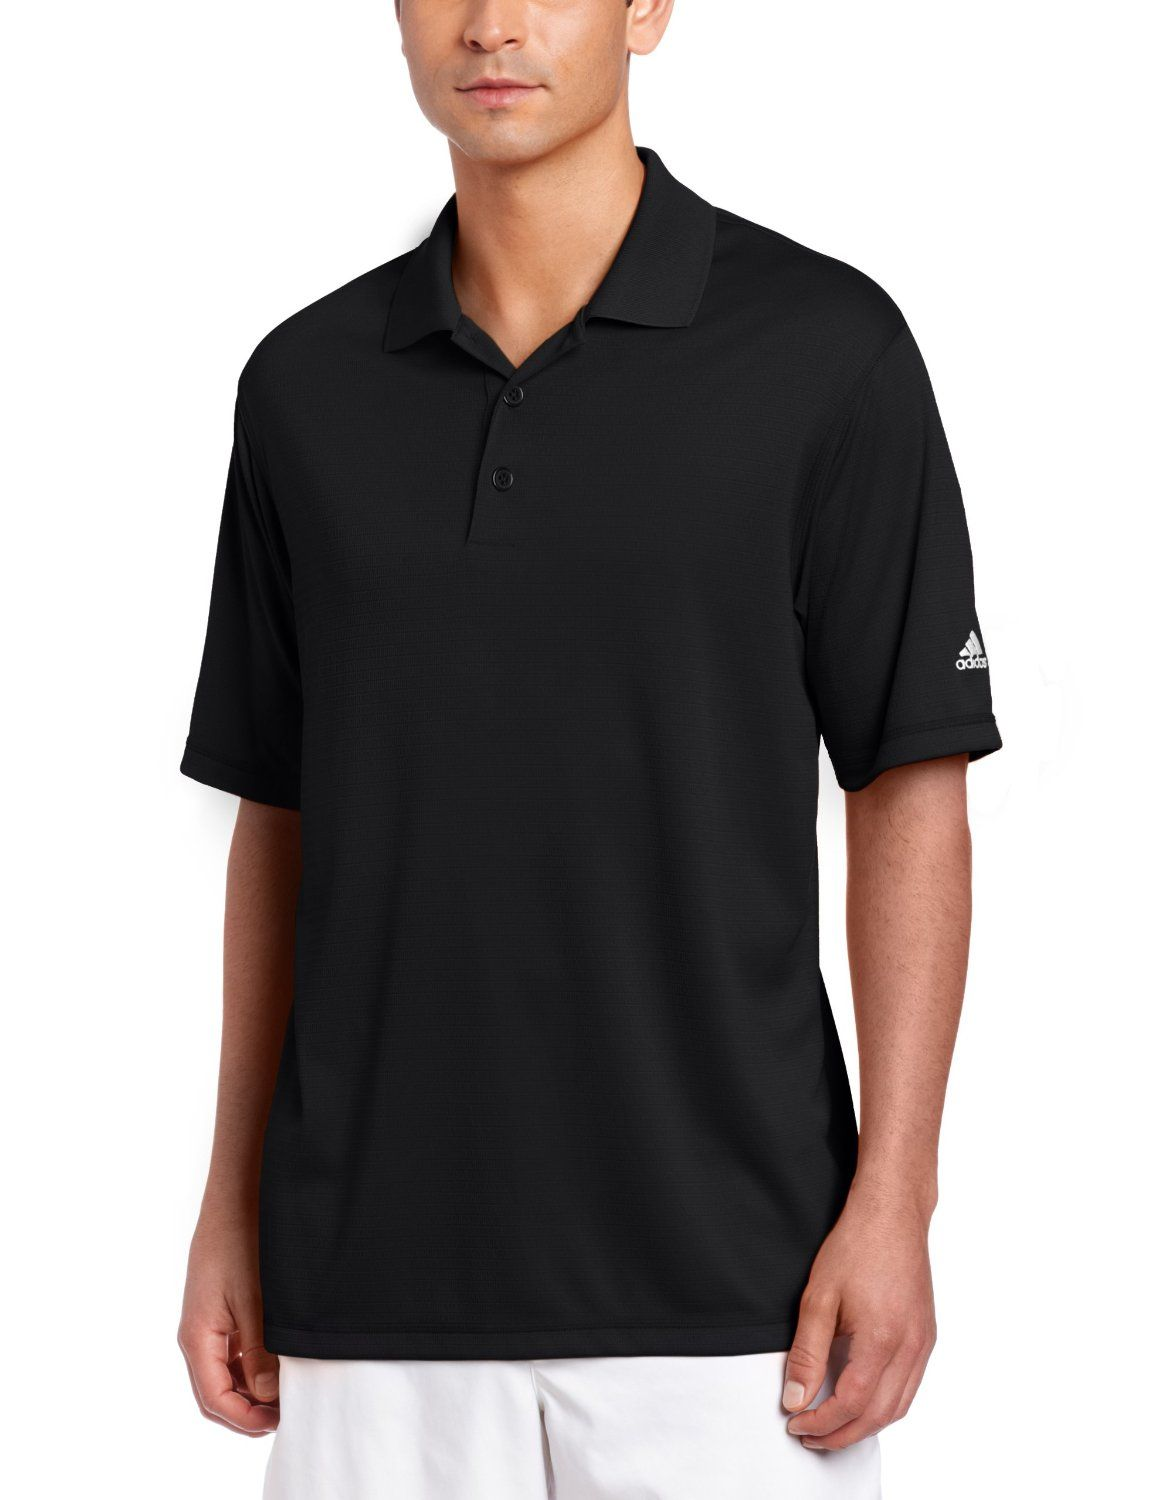 This comfortable and stylish mens Climalite solid golf polo shirt by Adidas  features a self collar